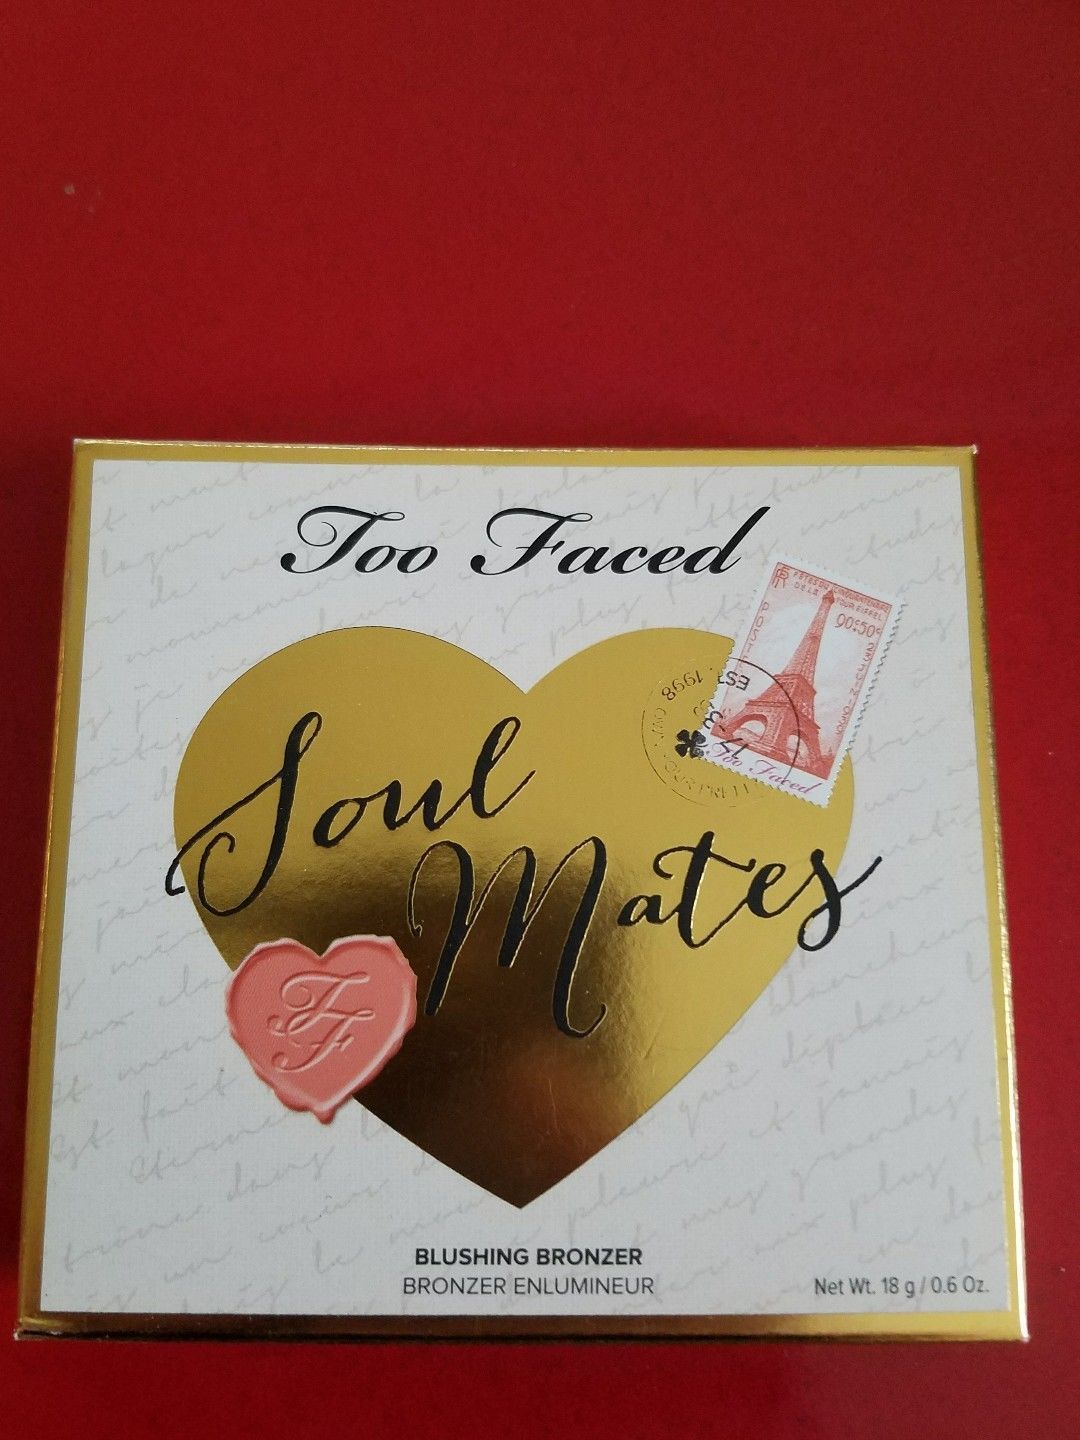 TOO FACED Soul Mates Blushing Bronzer - CARRIE & BIG - Brand New in Box - $17.95